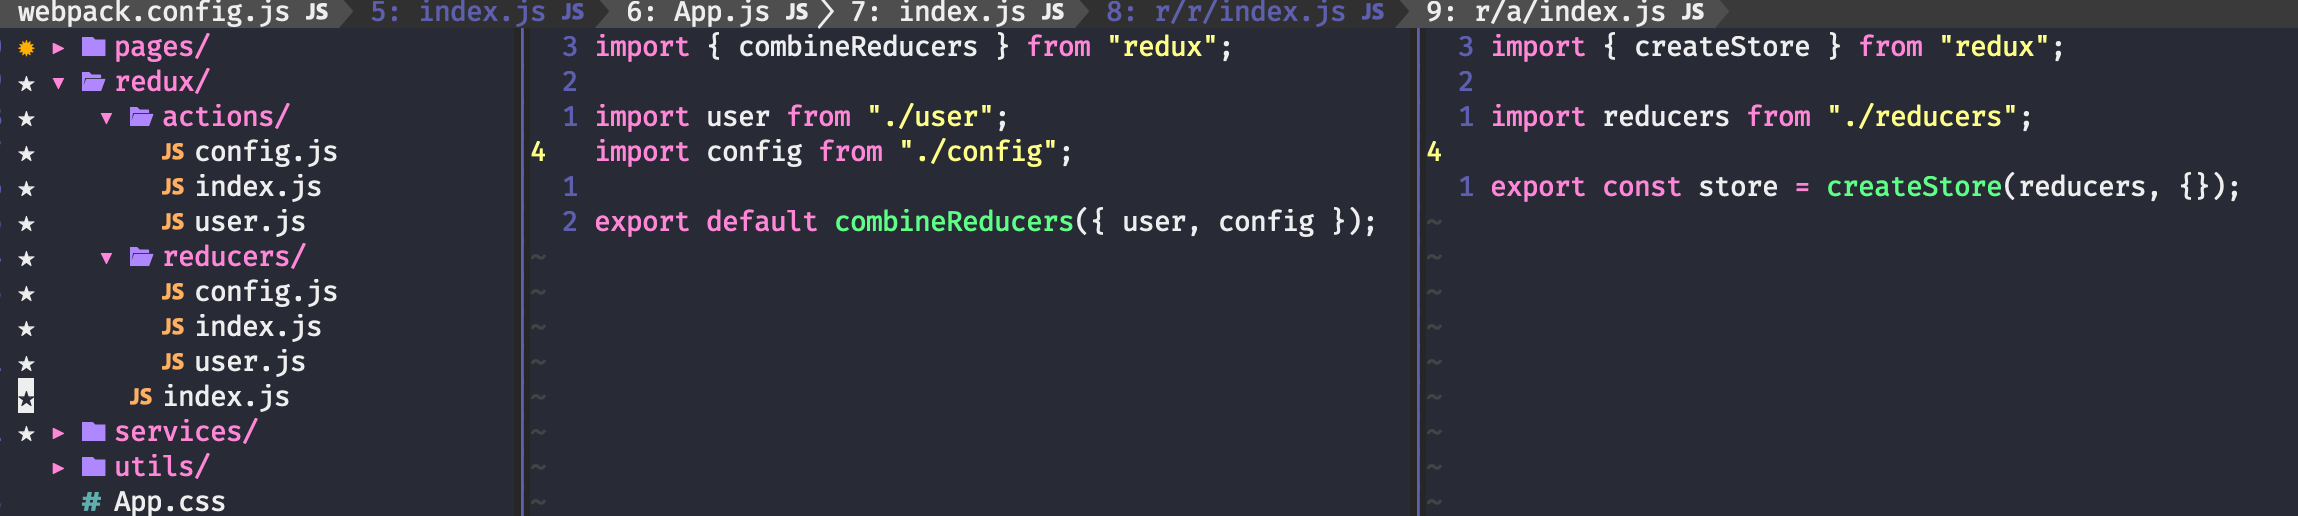 redux global reducers